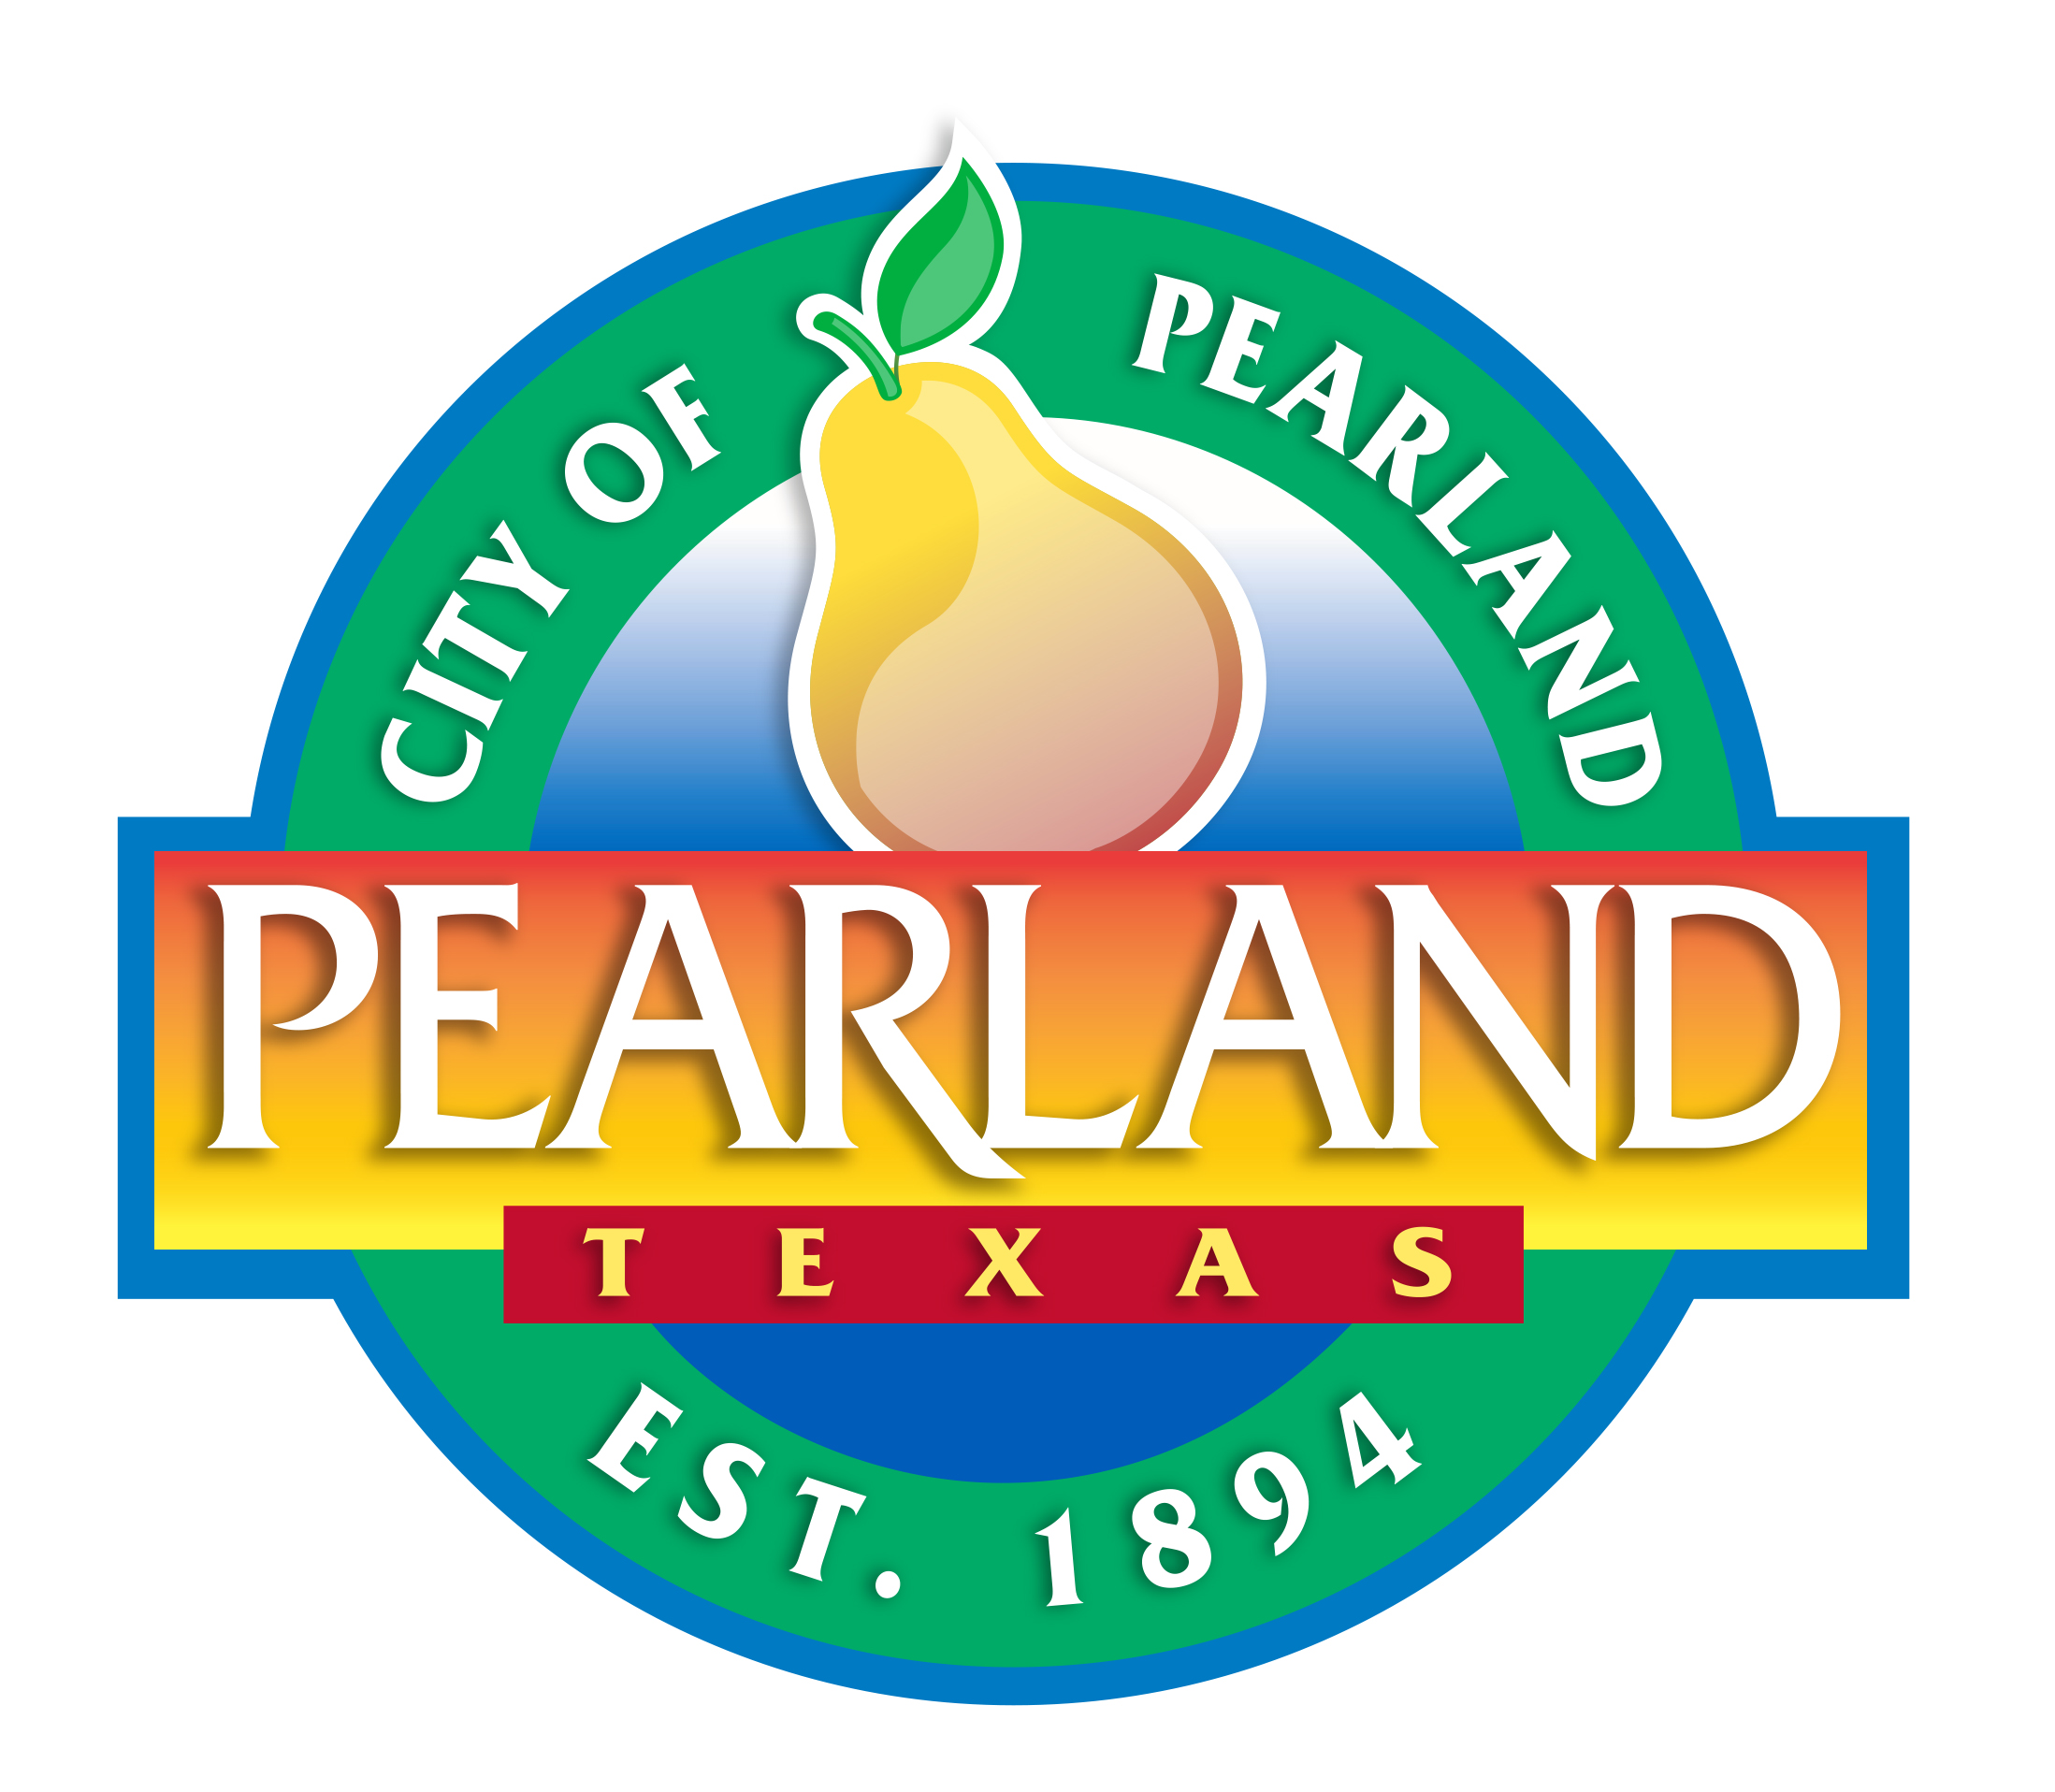 The City Of Pearland Texas Is Hiring For An Aquatic Specialist See Below For De S And Check Out Their Website For More Jobs